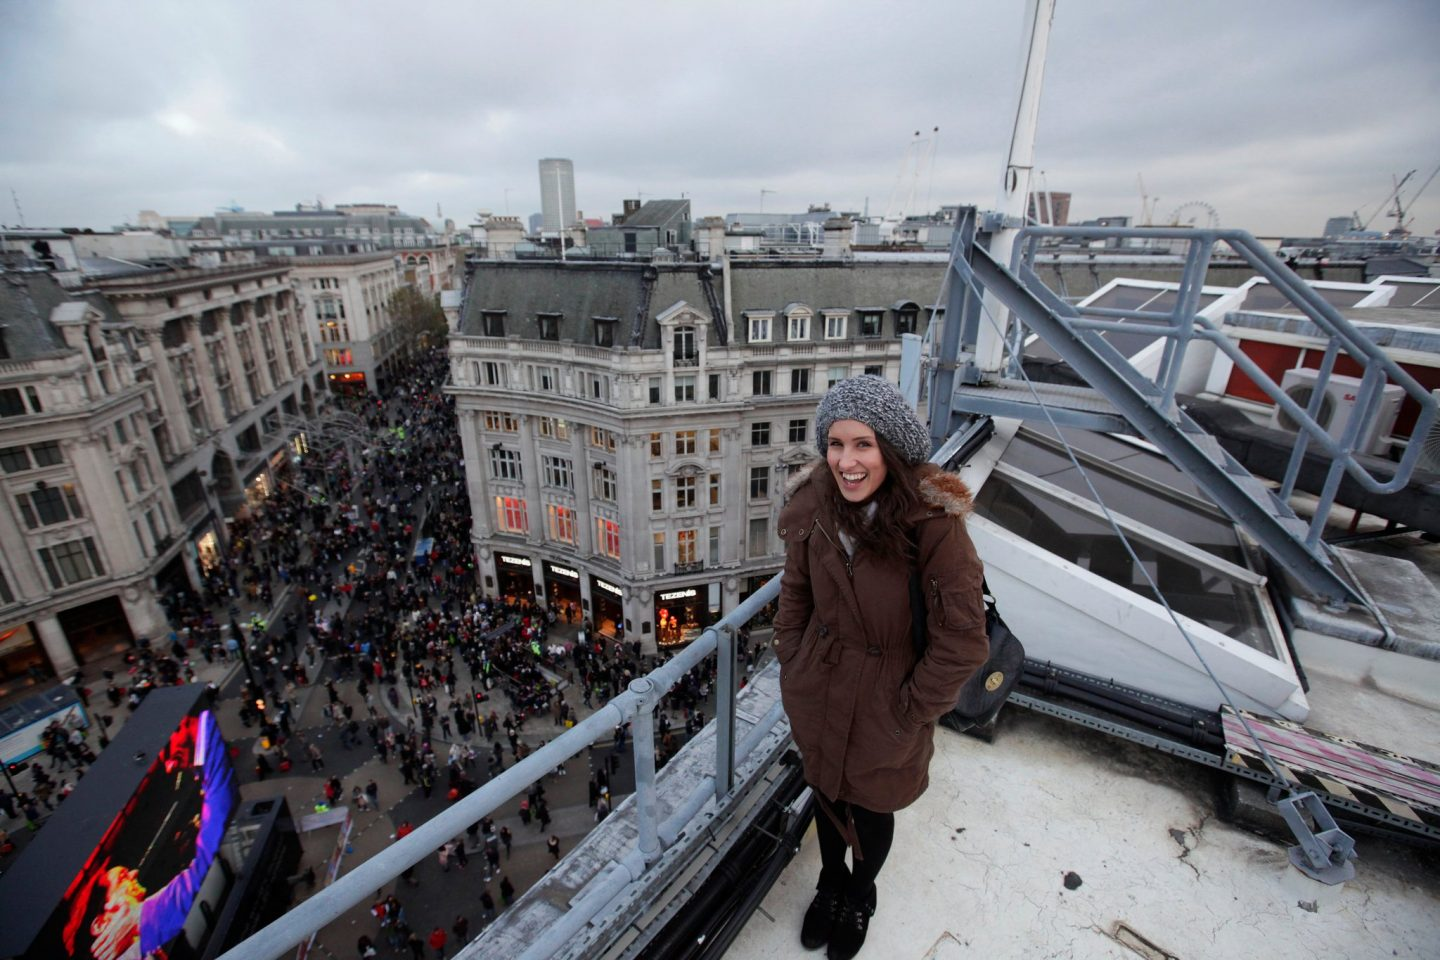 Jane Cook (HungryCityHippy) on Oxford Circus Rooftop